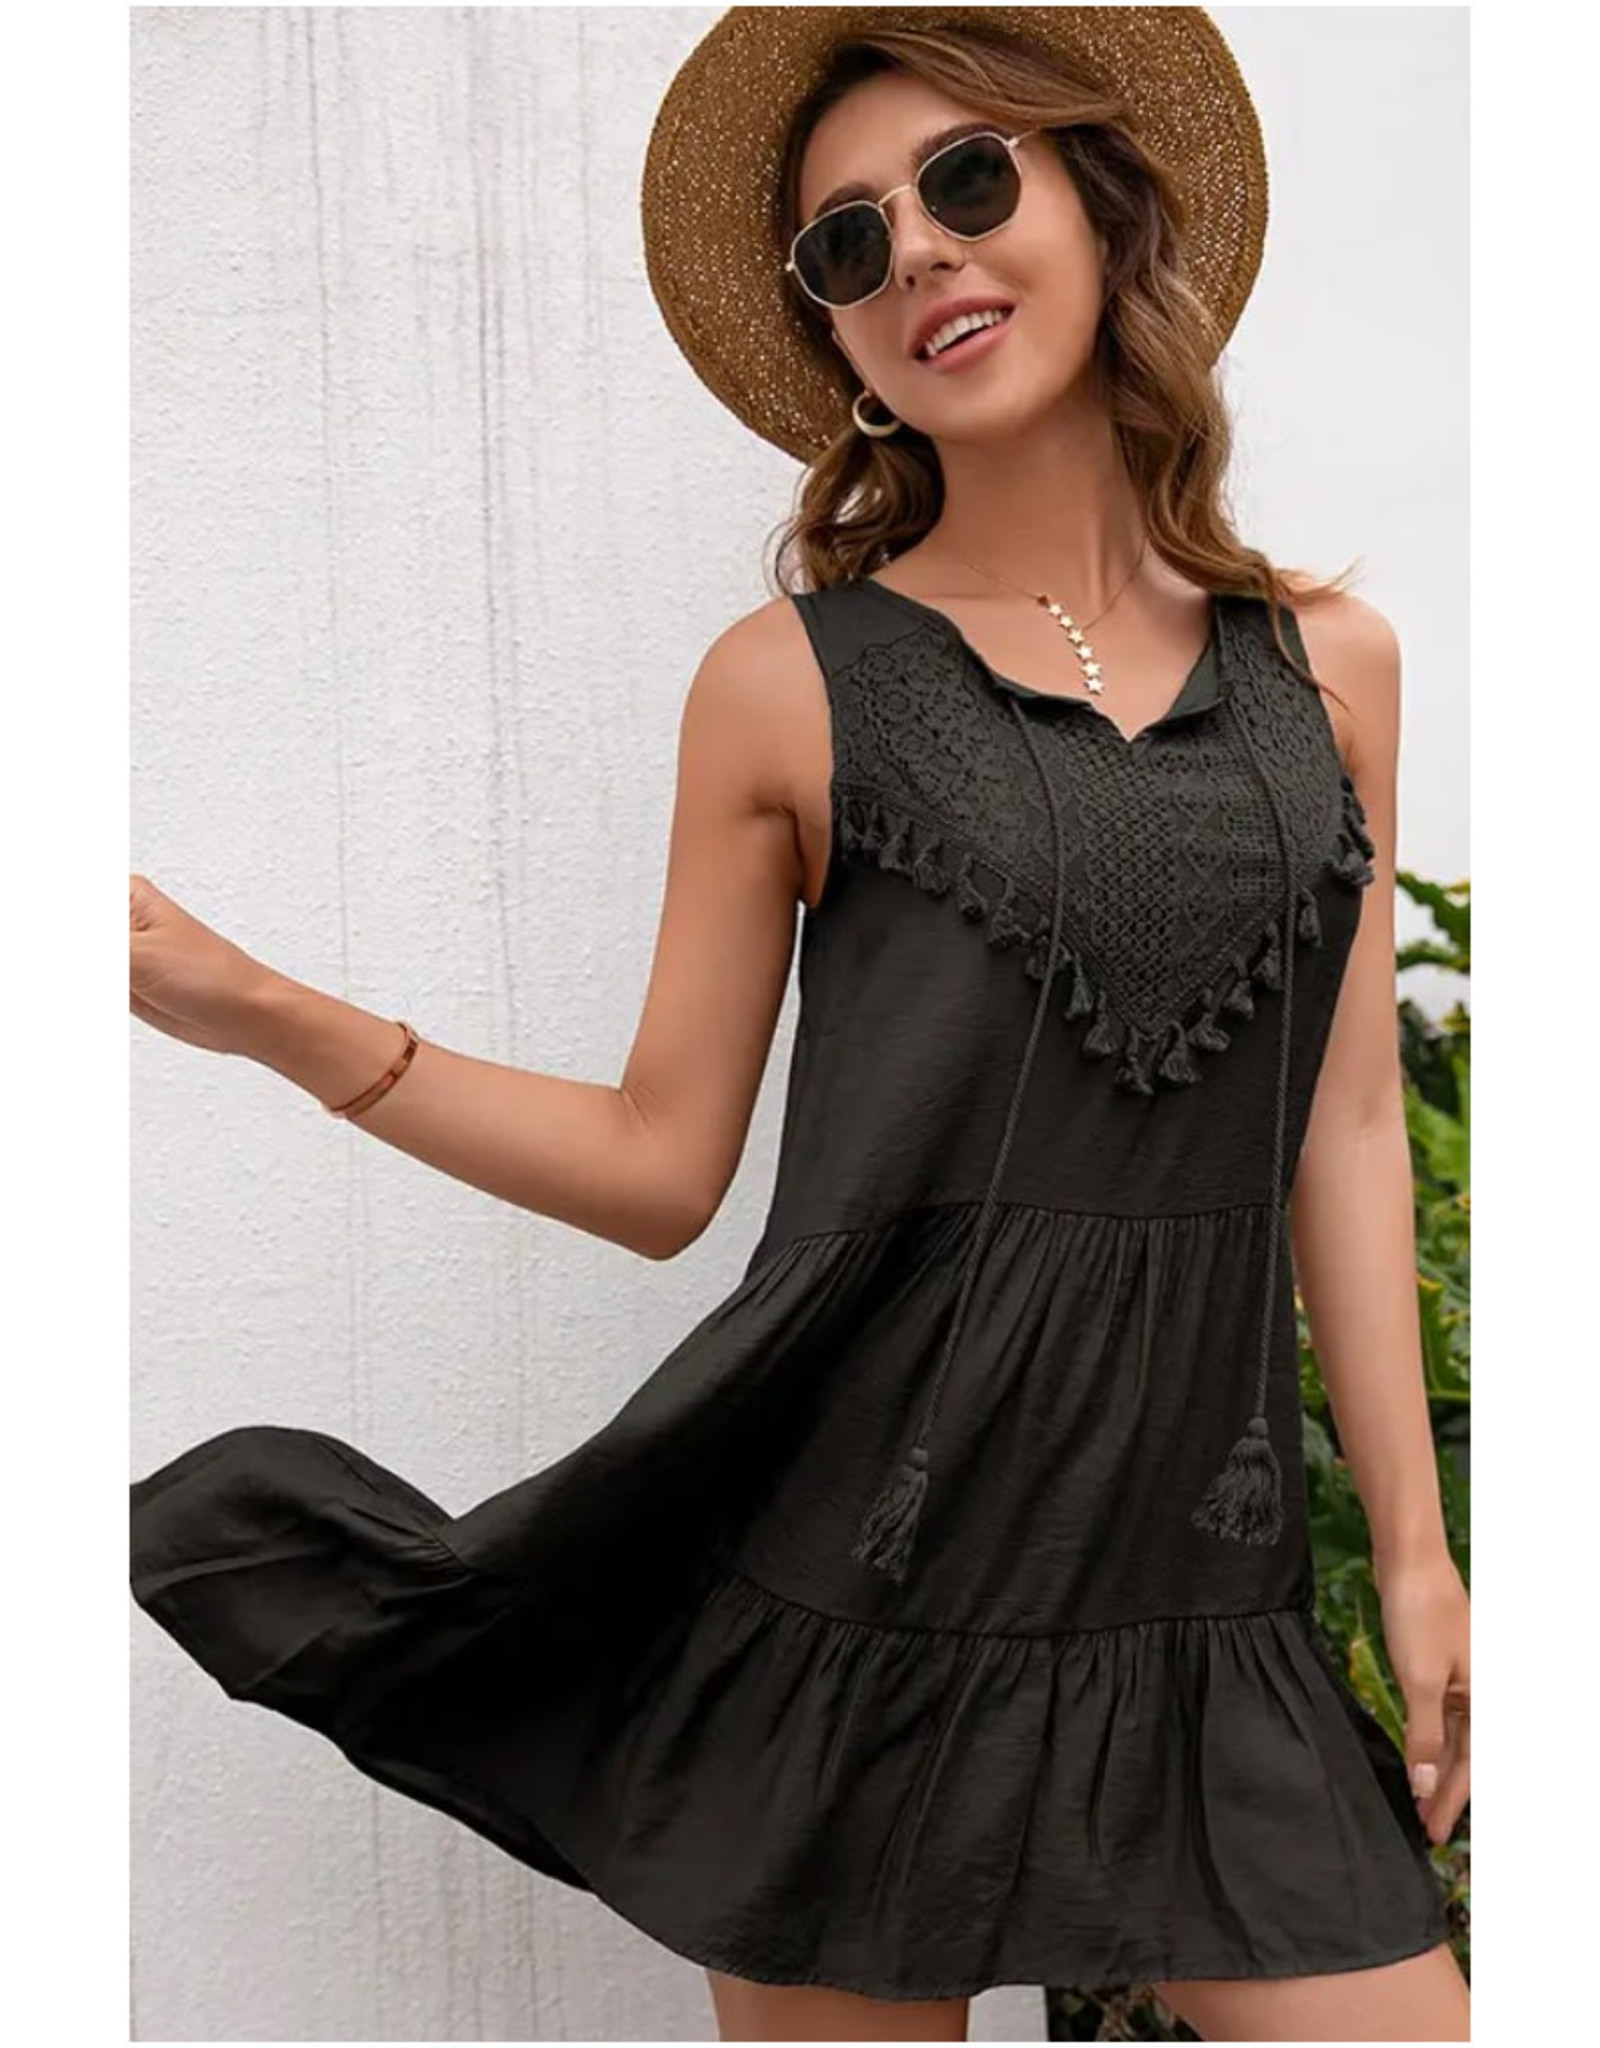 Tunic Dress with Crocheted Lace Bodice